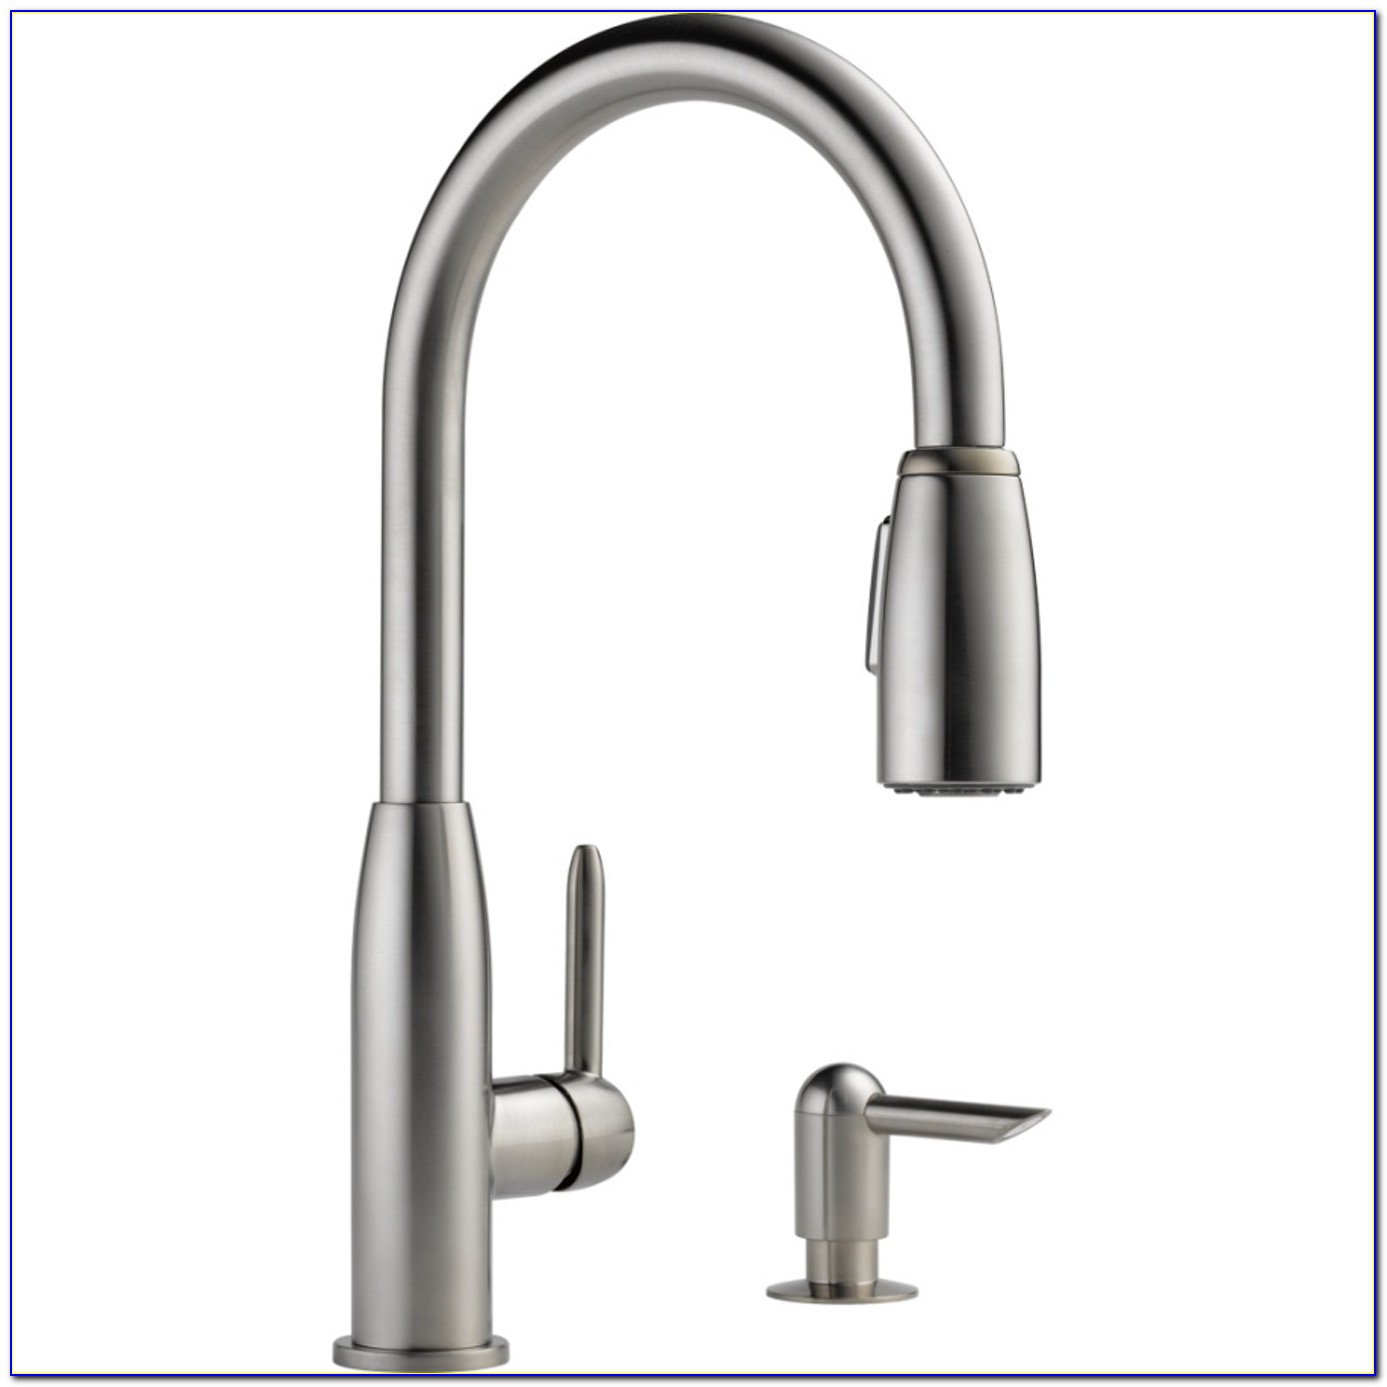 Best Aerator For Kitchen Faucet